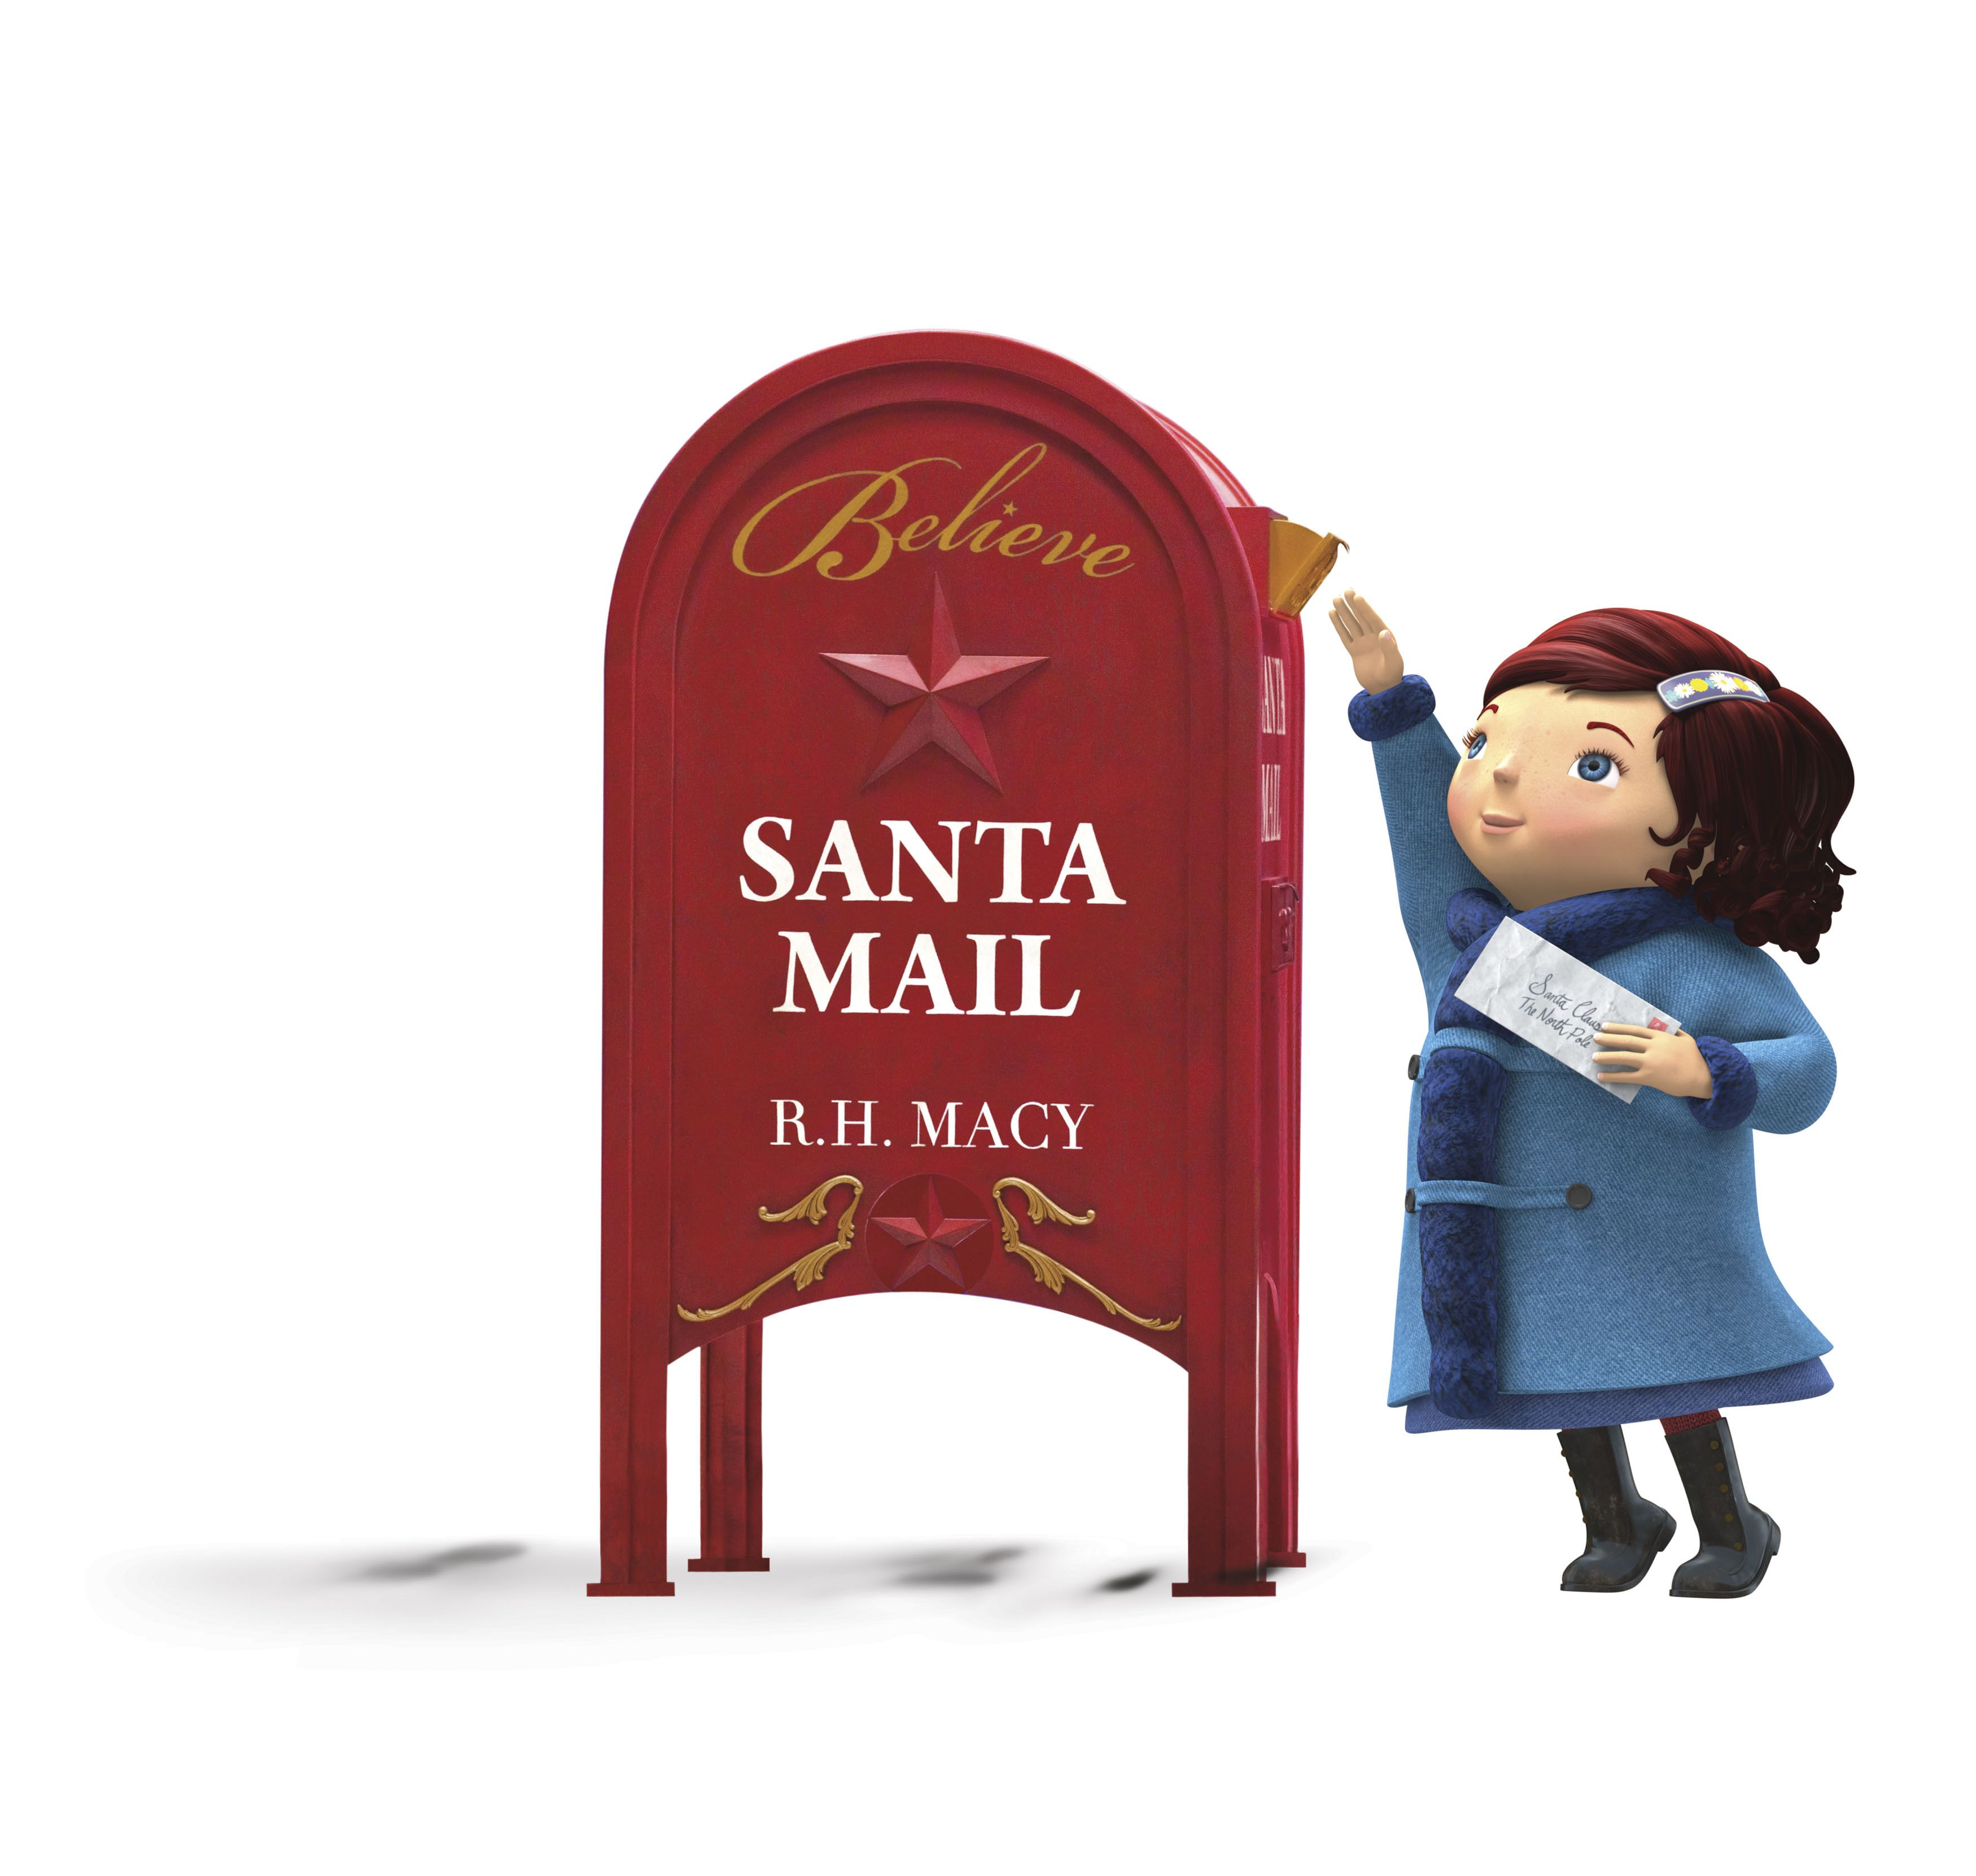 Letters to Santa--Going to Macy's on Tuesday!